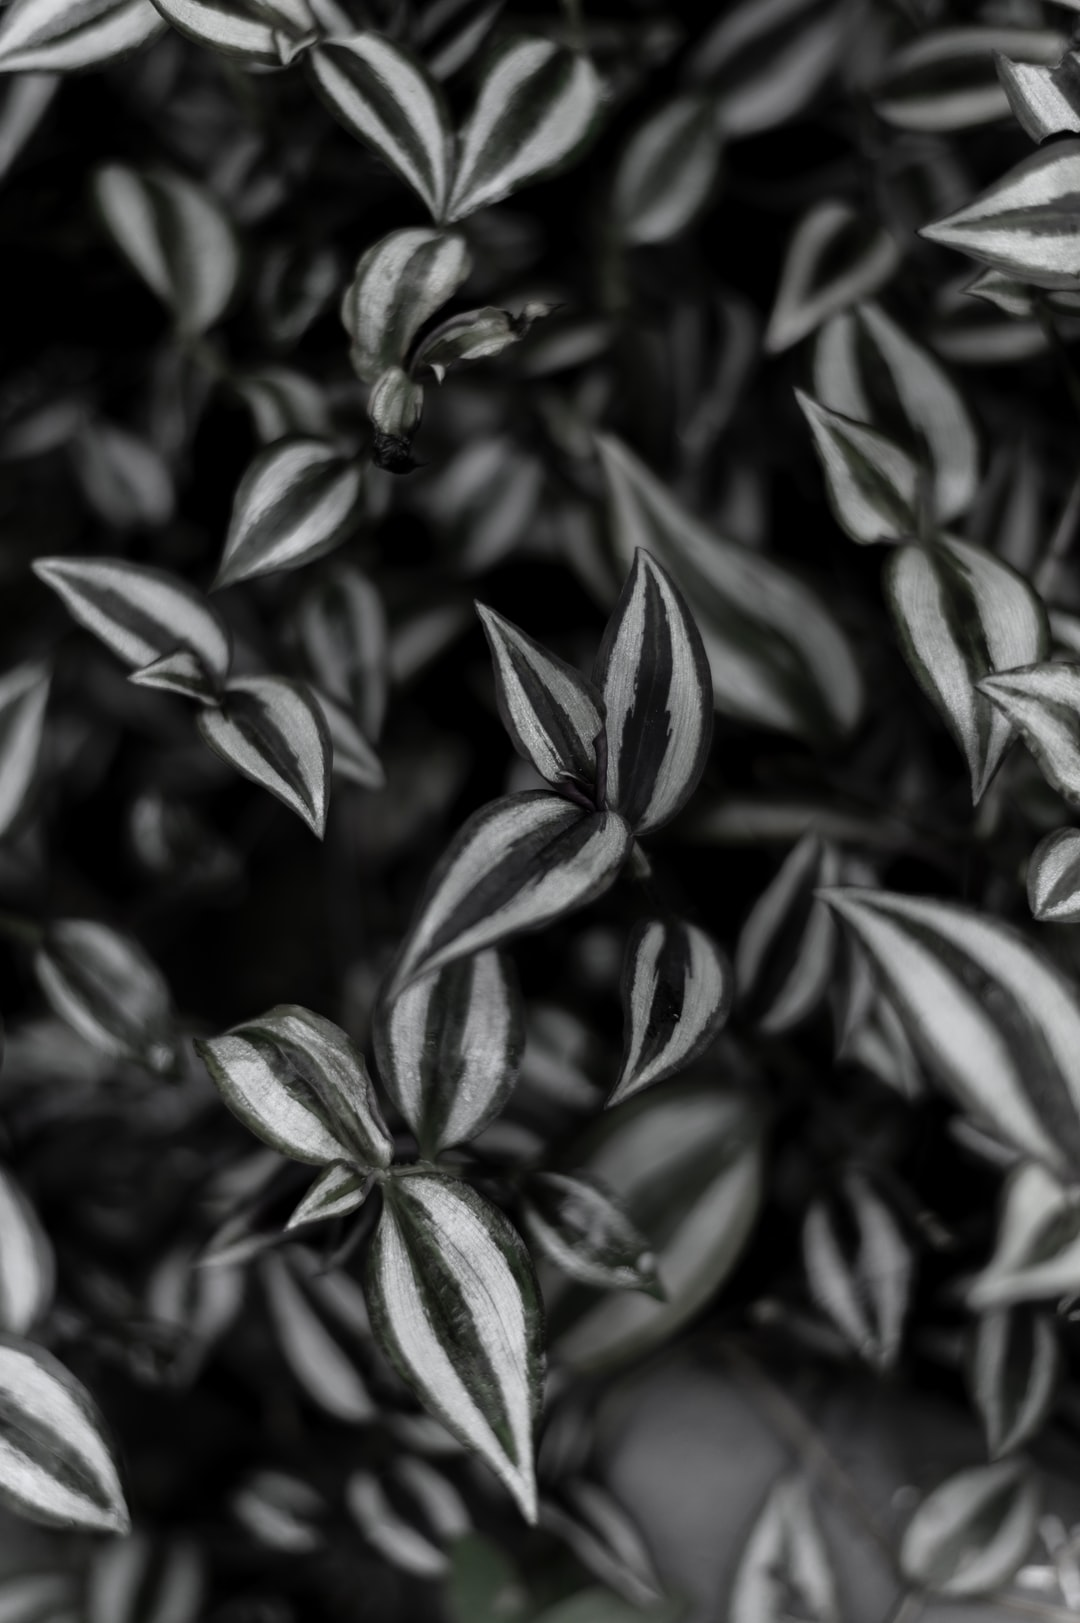 Black and white pattern of leafs